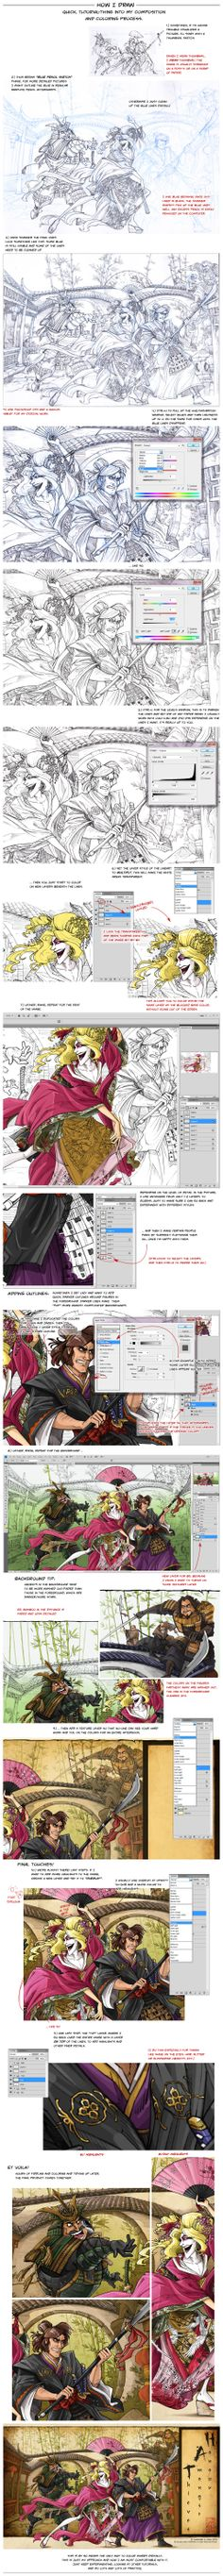 Quickie Tutorial: Color and Composition by *Canadian-Rainwater on deviantART